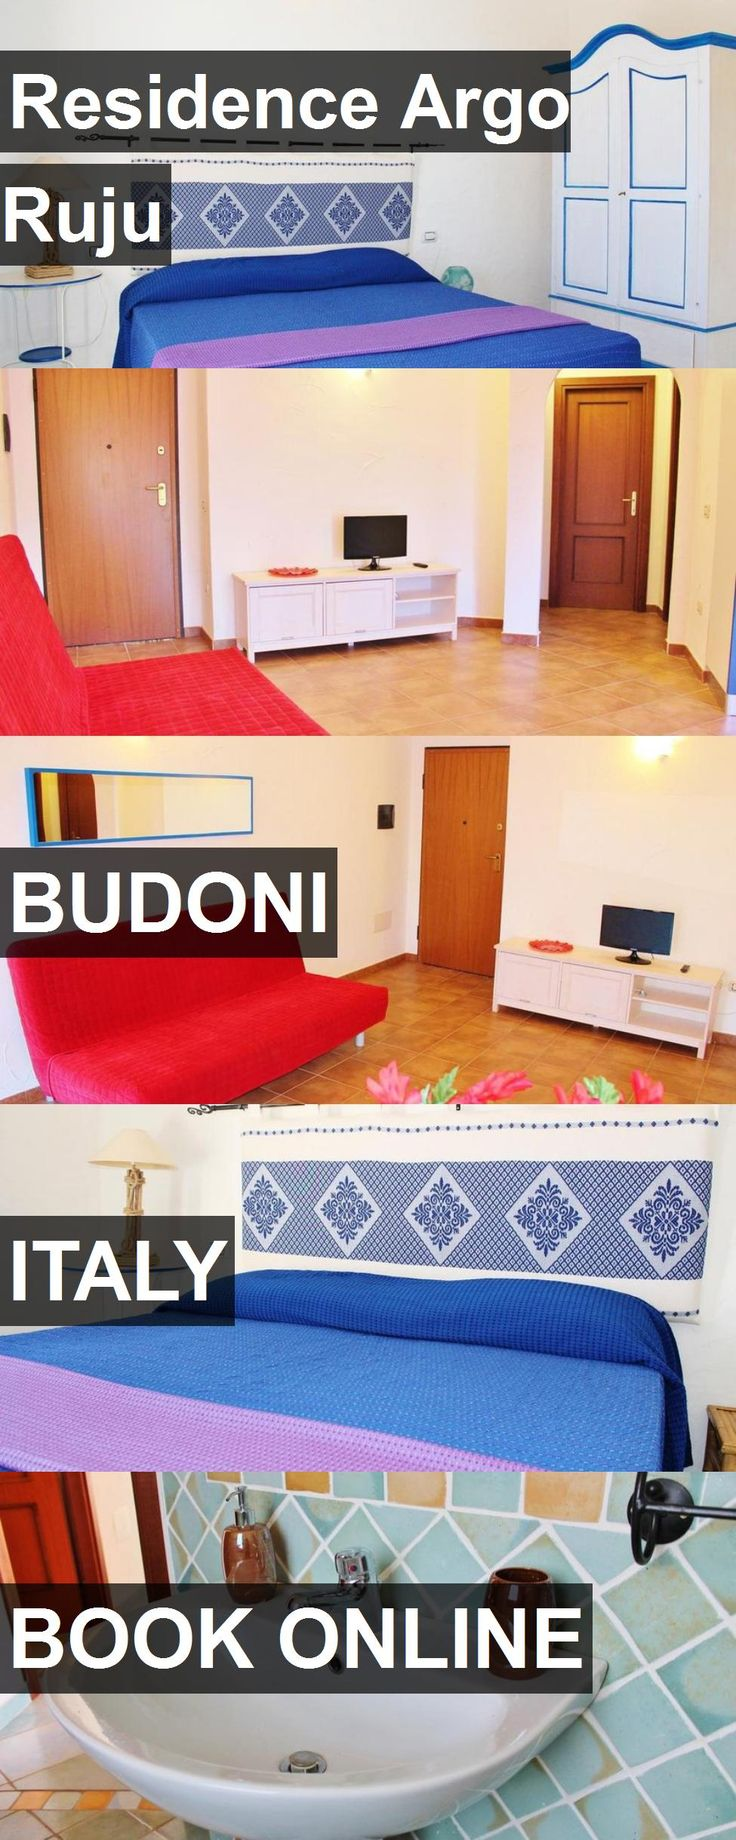 Hotel Residence Argo Ruju in Budoni, Italy. For more information, photos, reviews and best prices please follow the link. #Italy #Budoni #travel #vacation #hotel